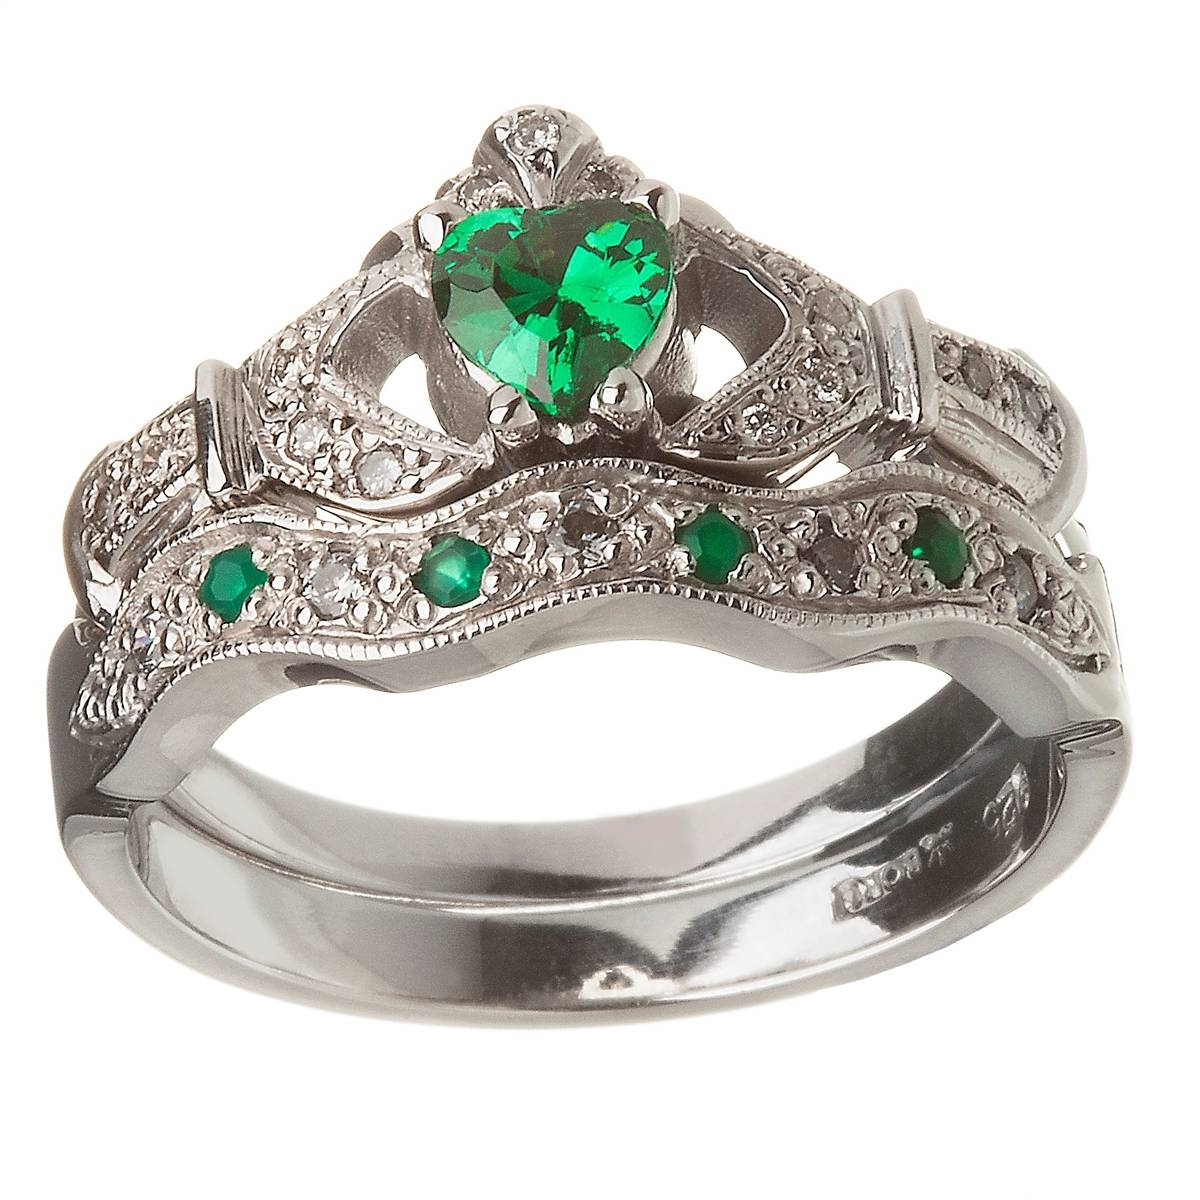 14K White Gold Emerald Set Heart Claddagh Ring & Wedding Ring Set With White Gold Emerald Engagement Rings (View 5 of 15)